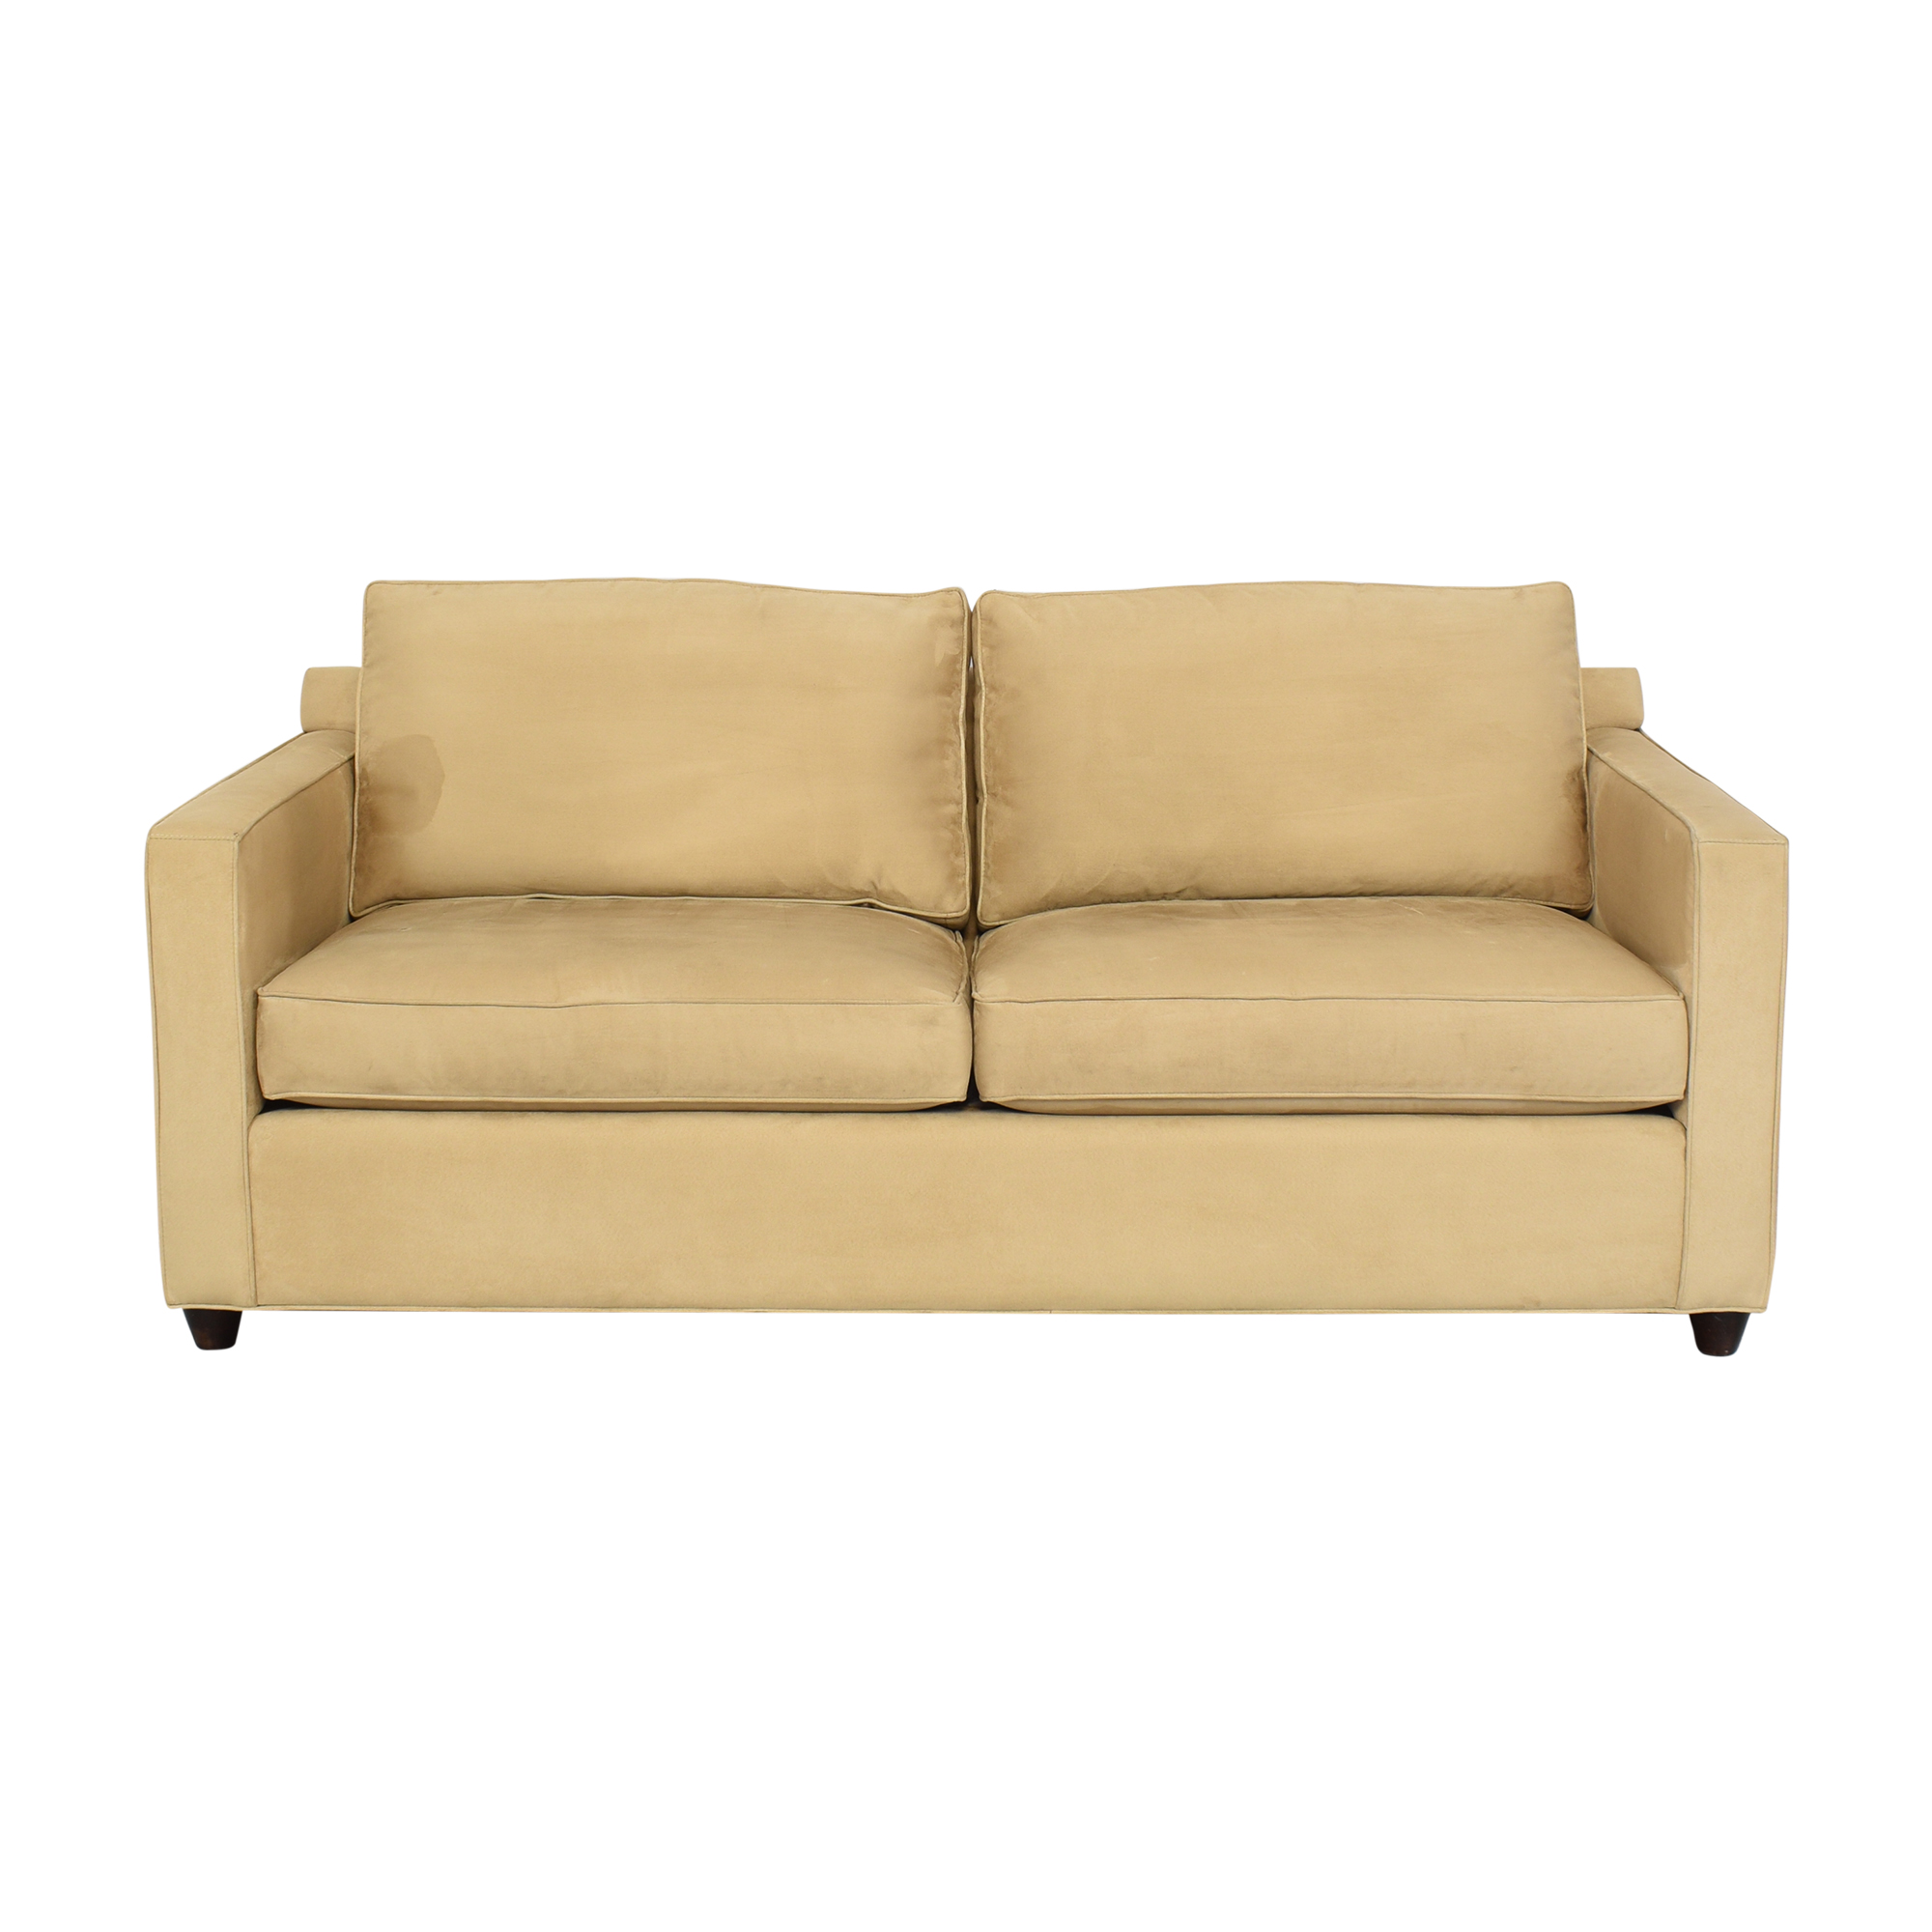 Crate & Barrel Two Cushion Sofa sale